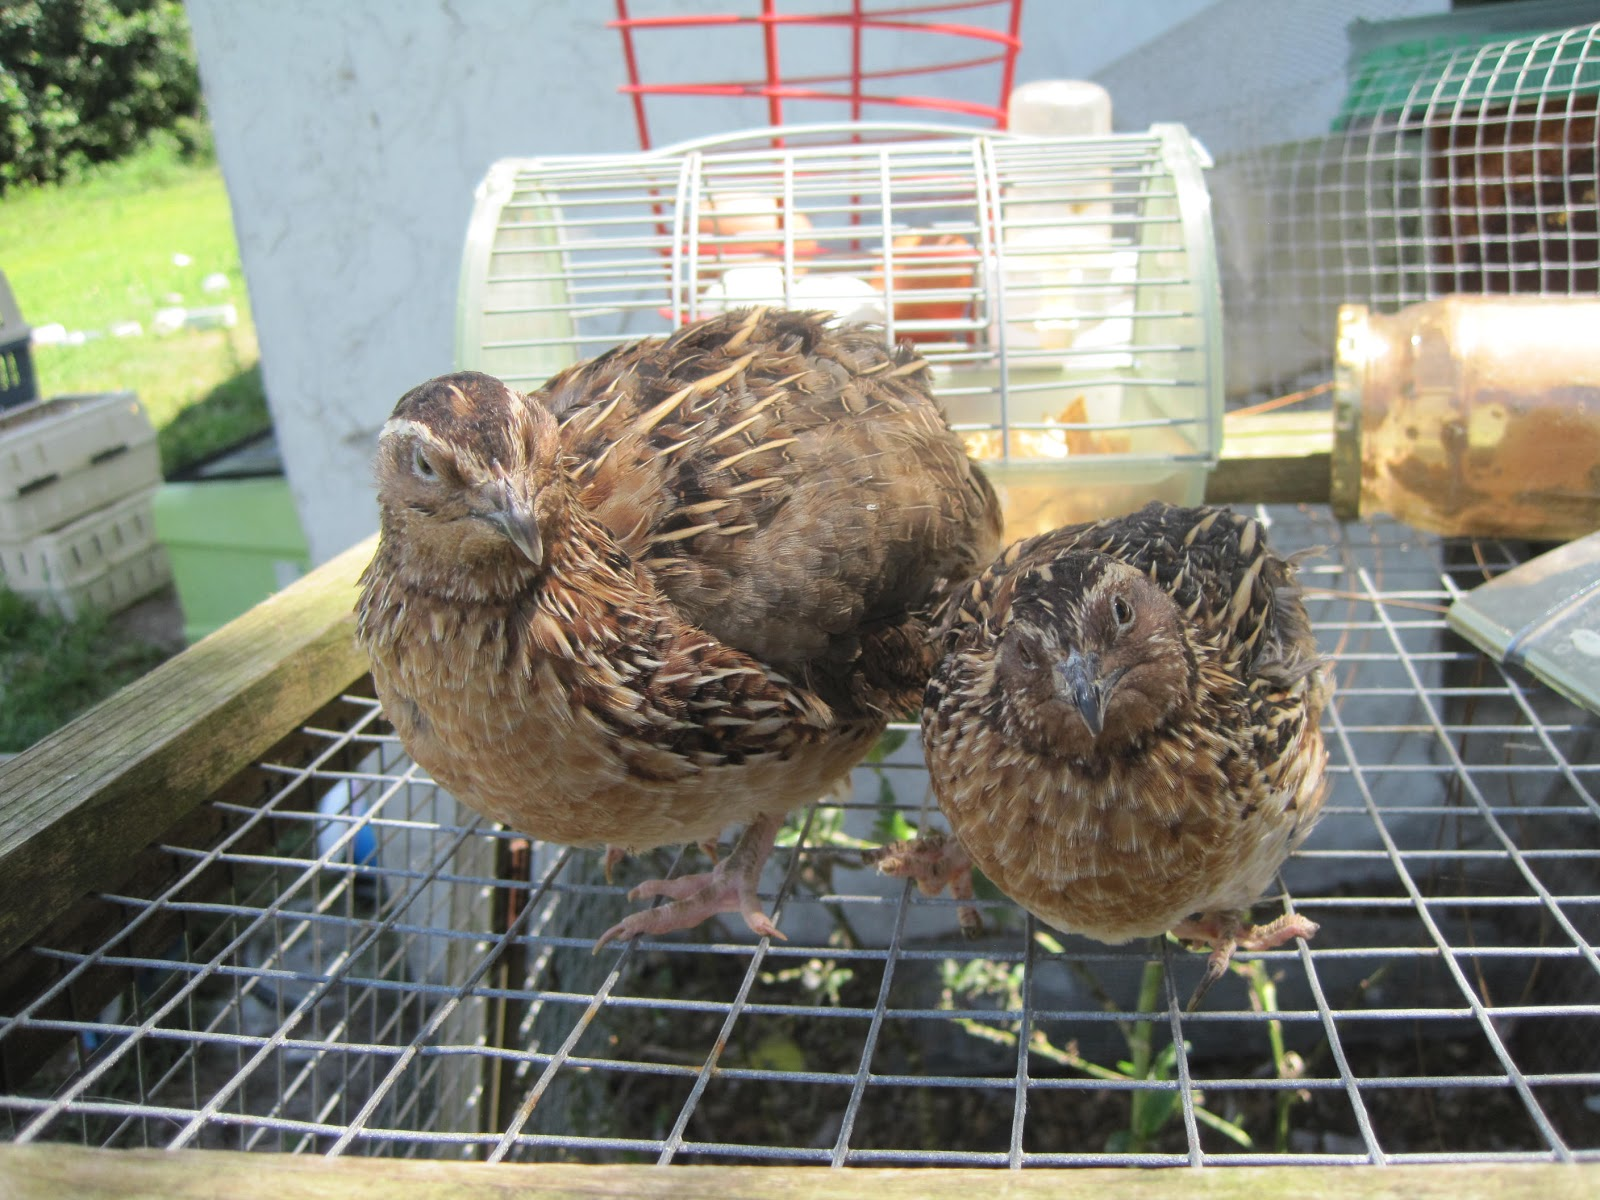 Jumbo coturnix quail - photo#19